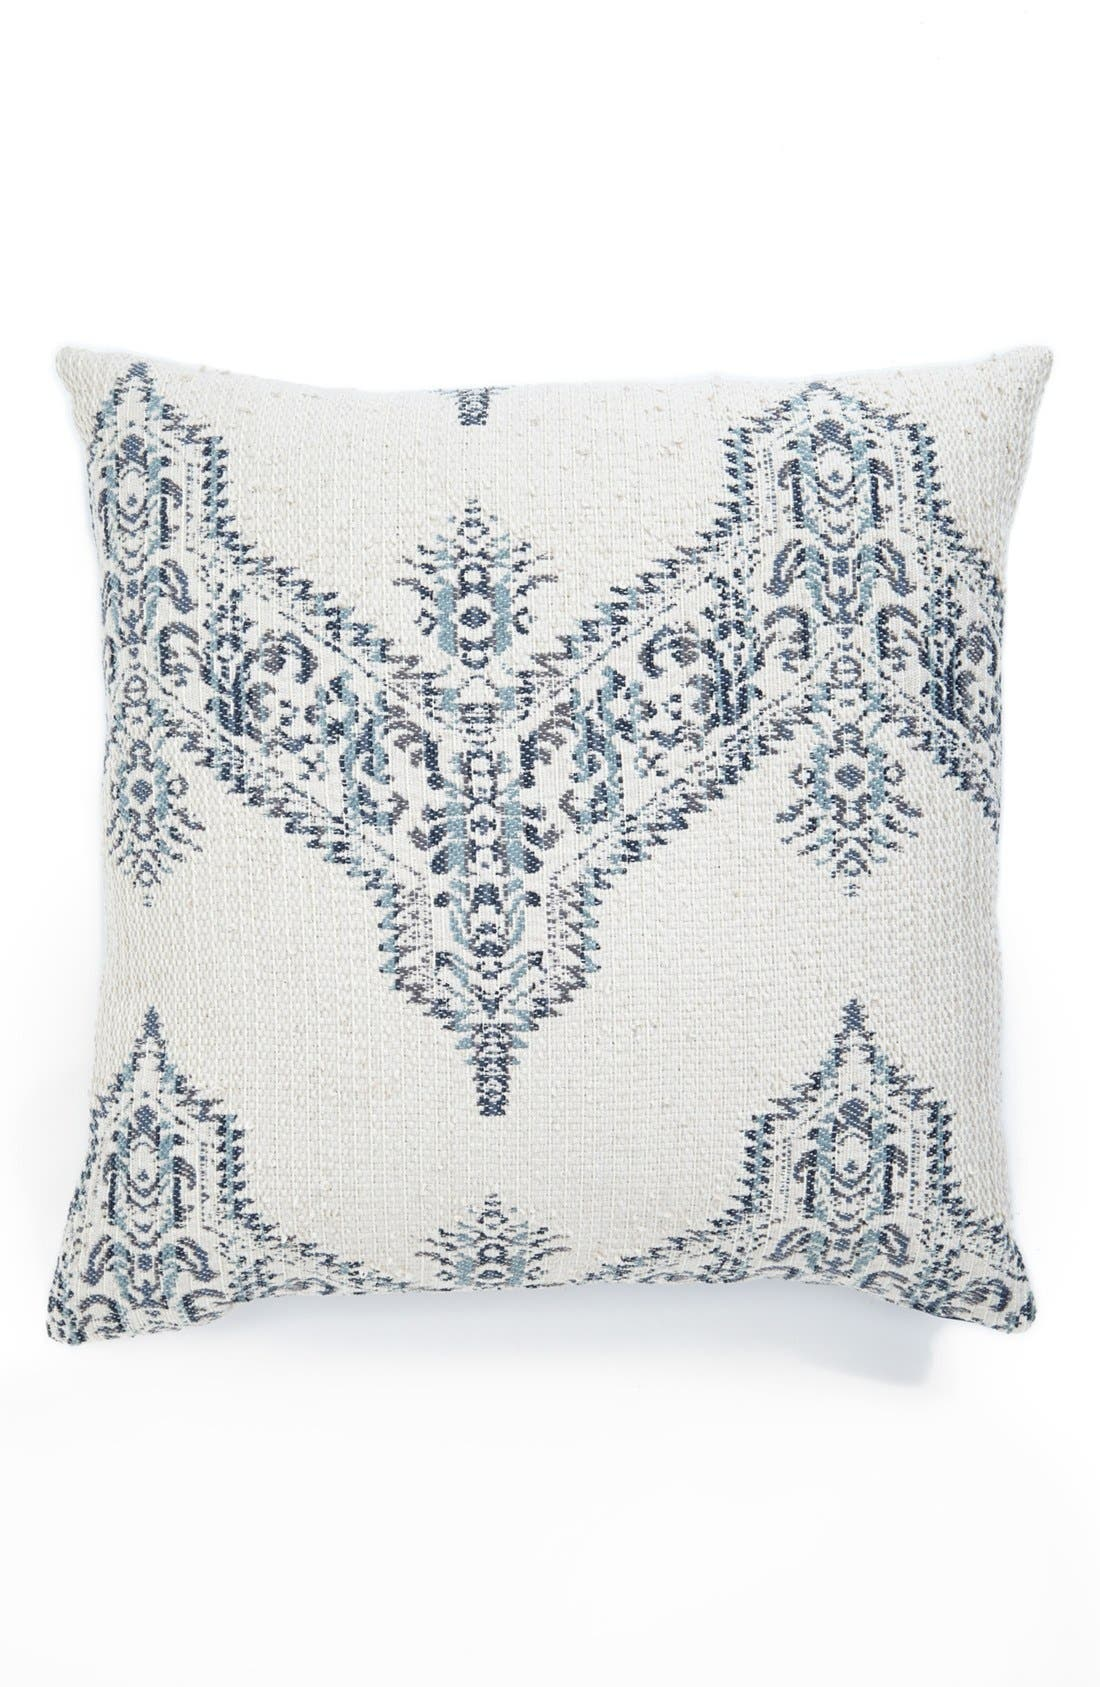 Main Image - Spencer N. Home 'Aztec Blanket' Pillow